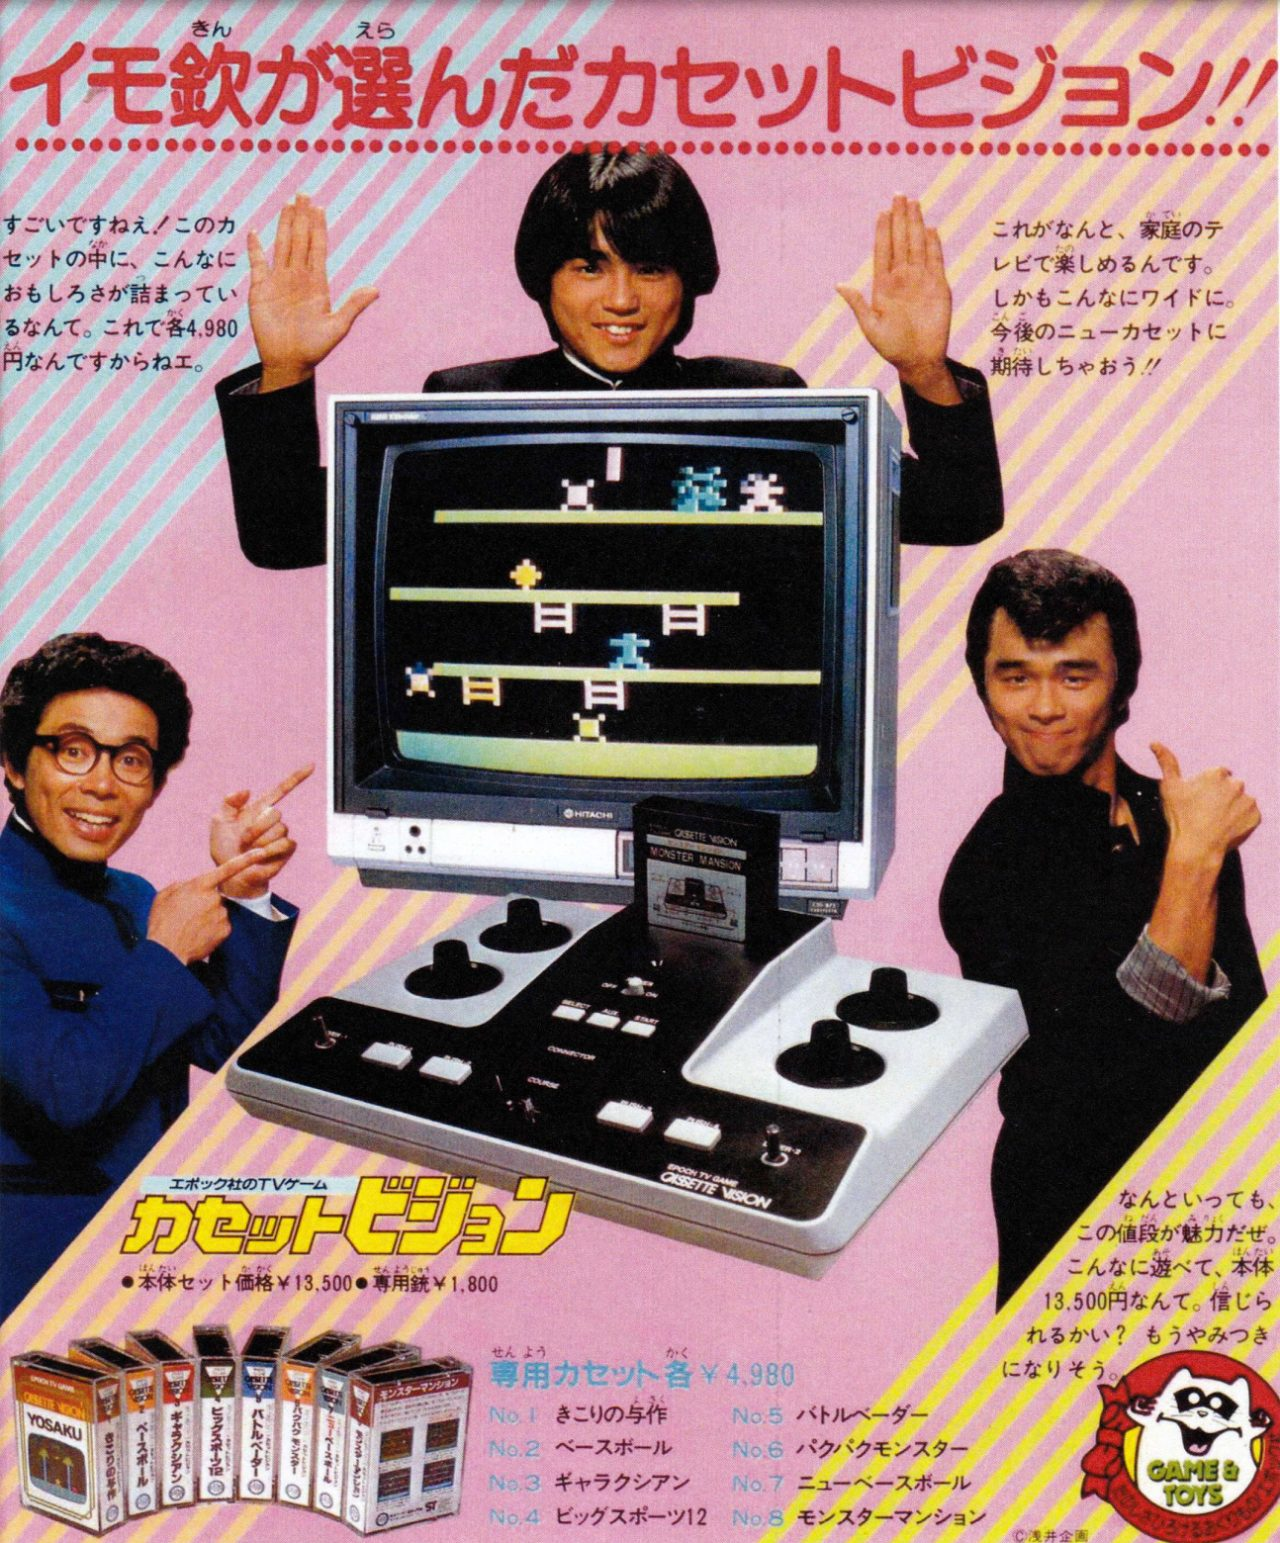 Japanese Video Games Ads from the 1980s - Flashbak